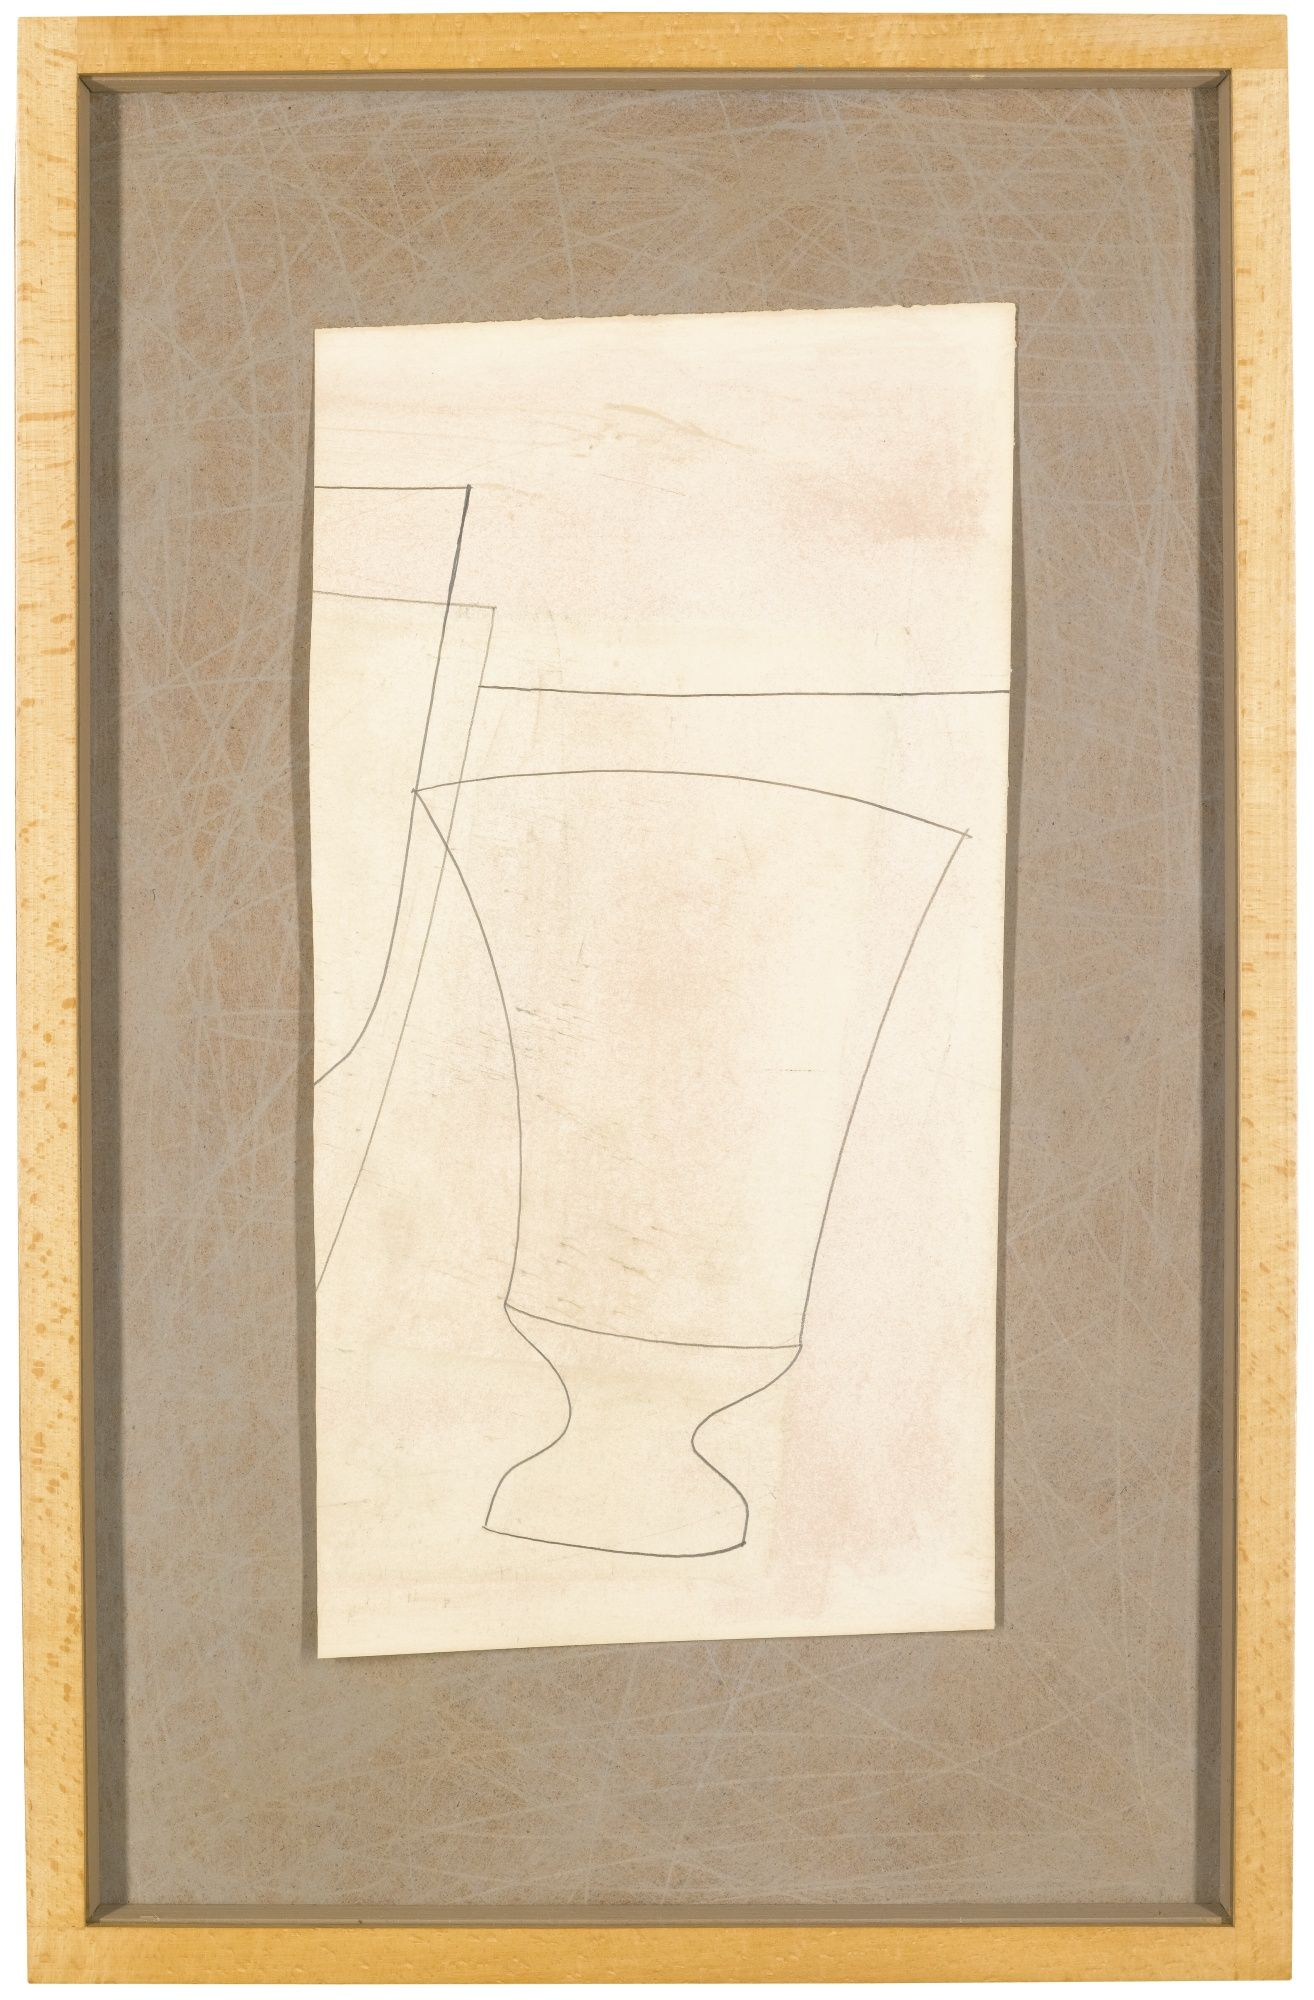 Lot | Sotheby\'s Ben Nicholson, note frame | Frames, mounts and hangs ...